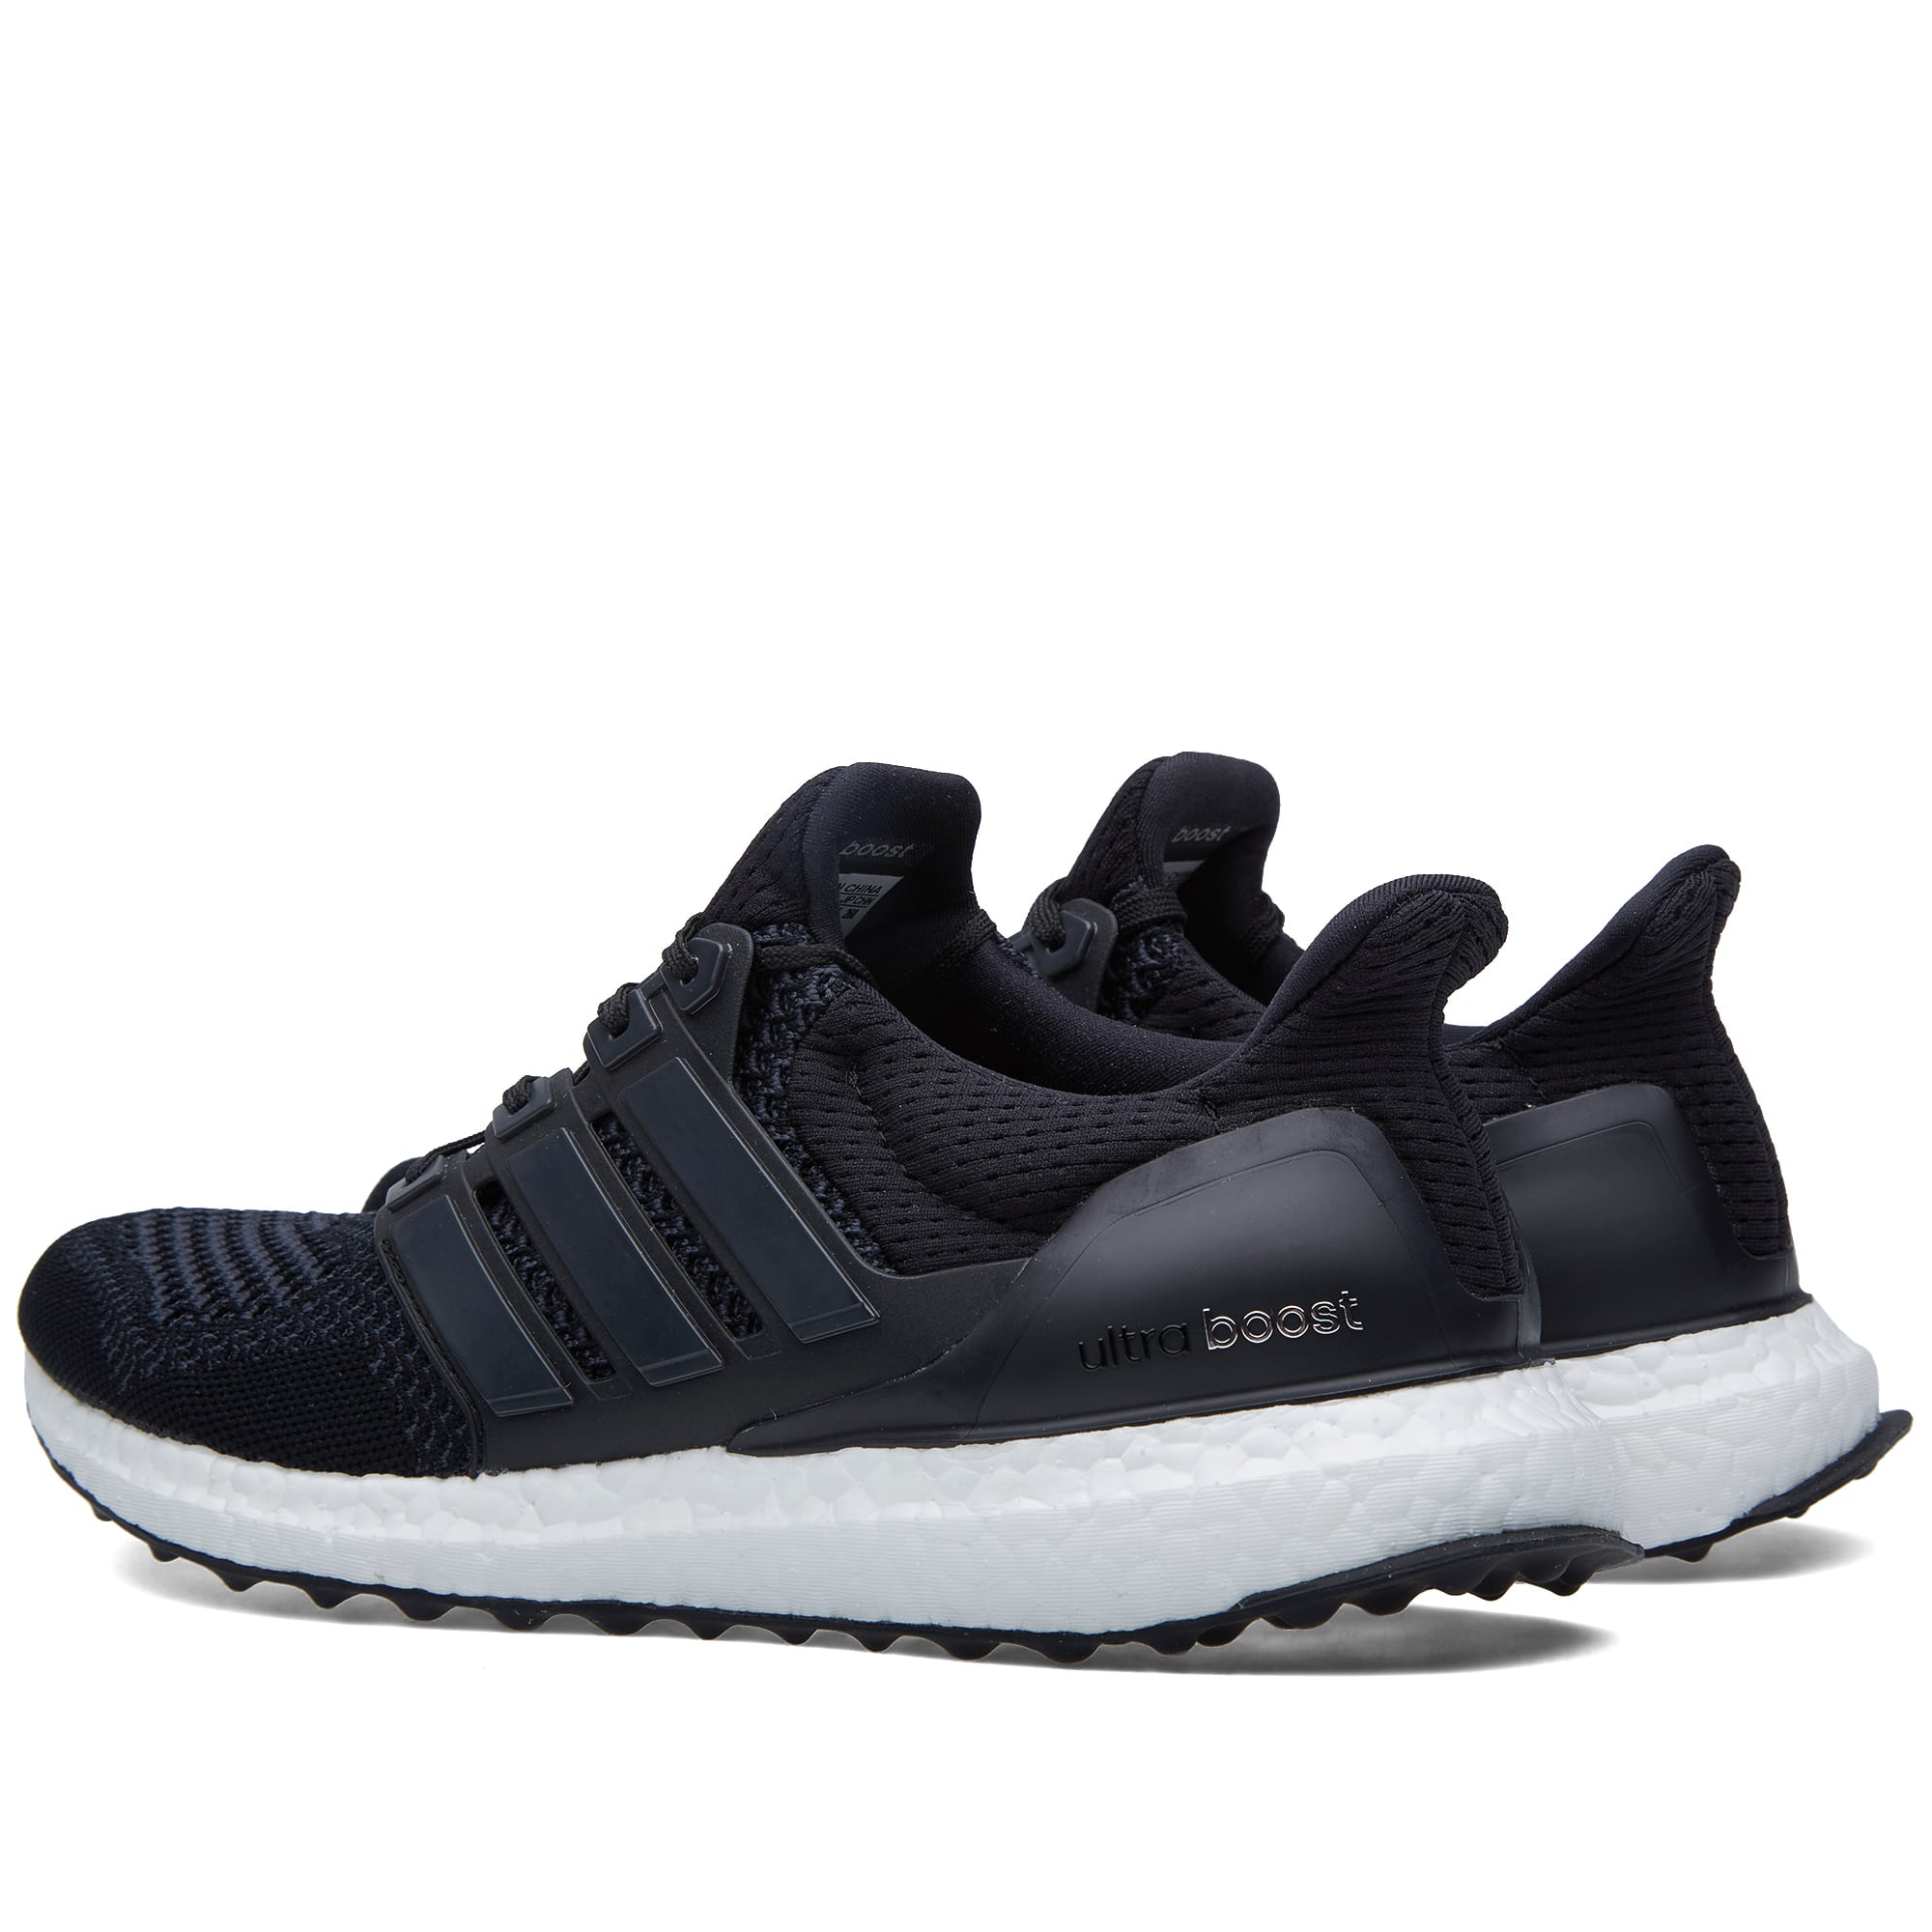 8edbf1c8e6ce5 Adidas Ultra Boost M Core Black   White